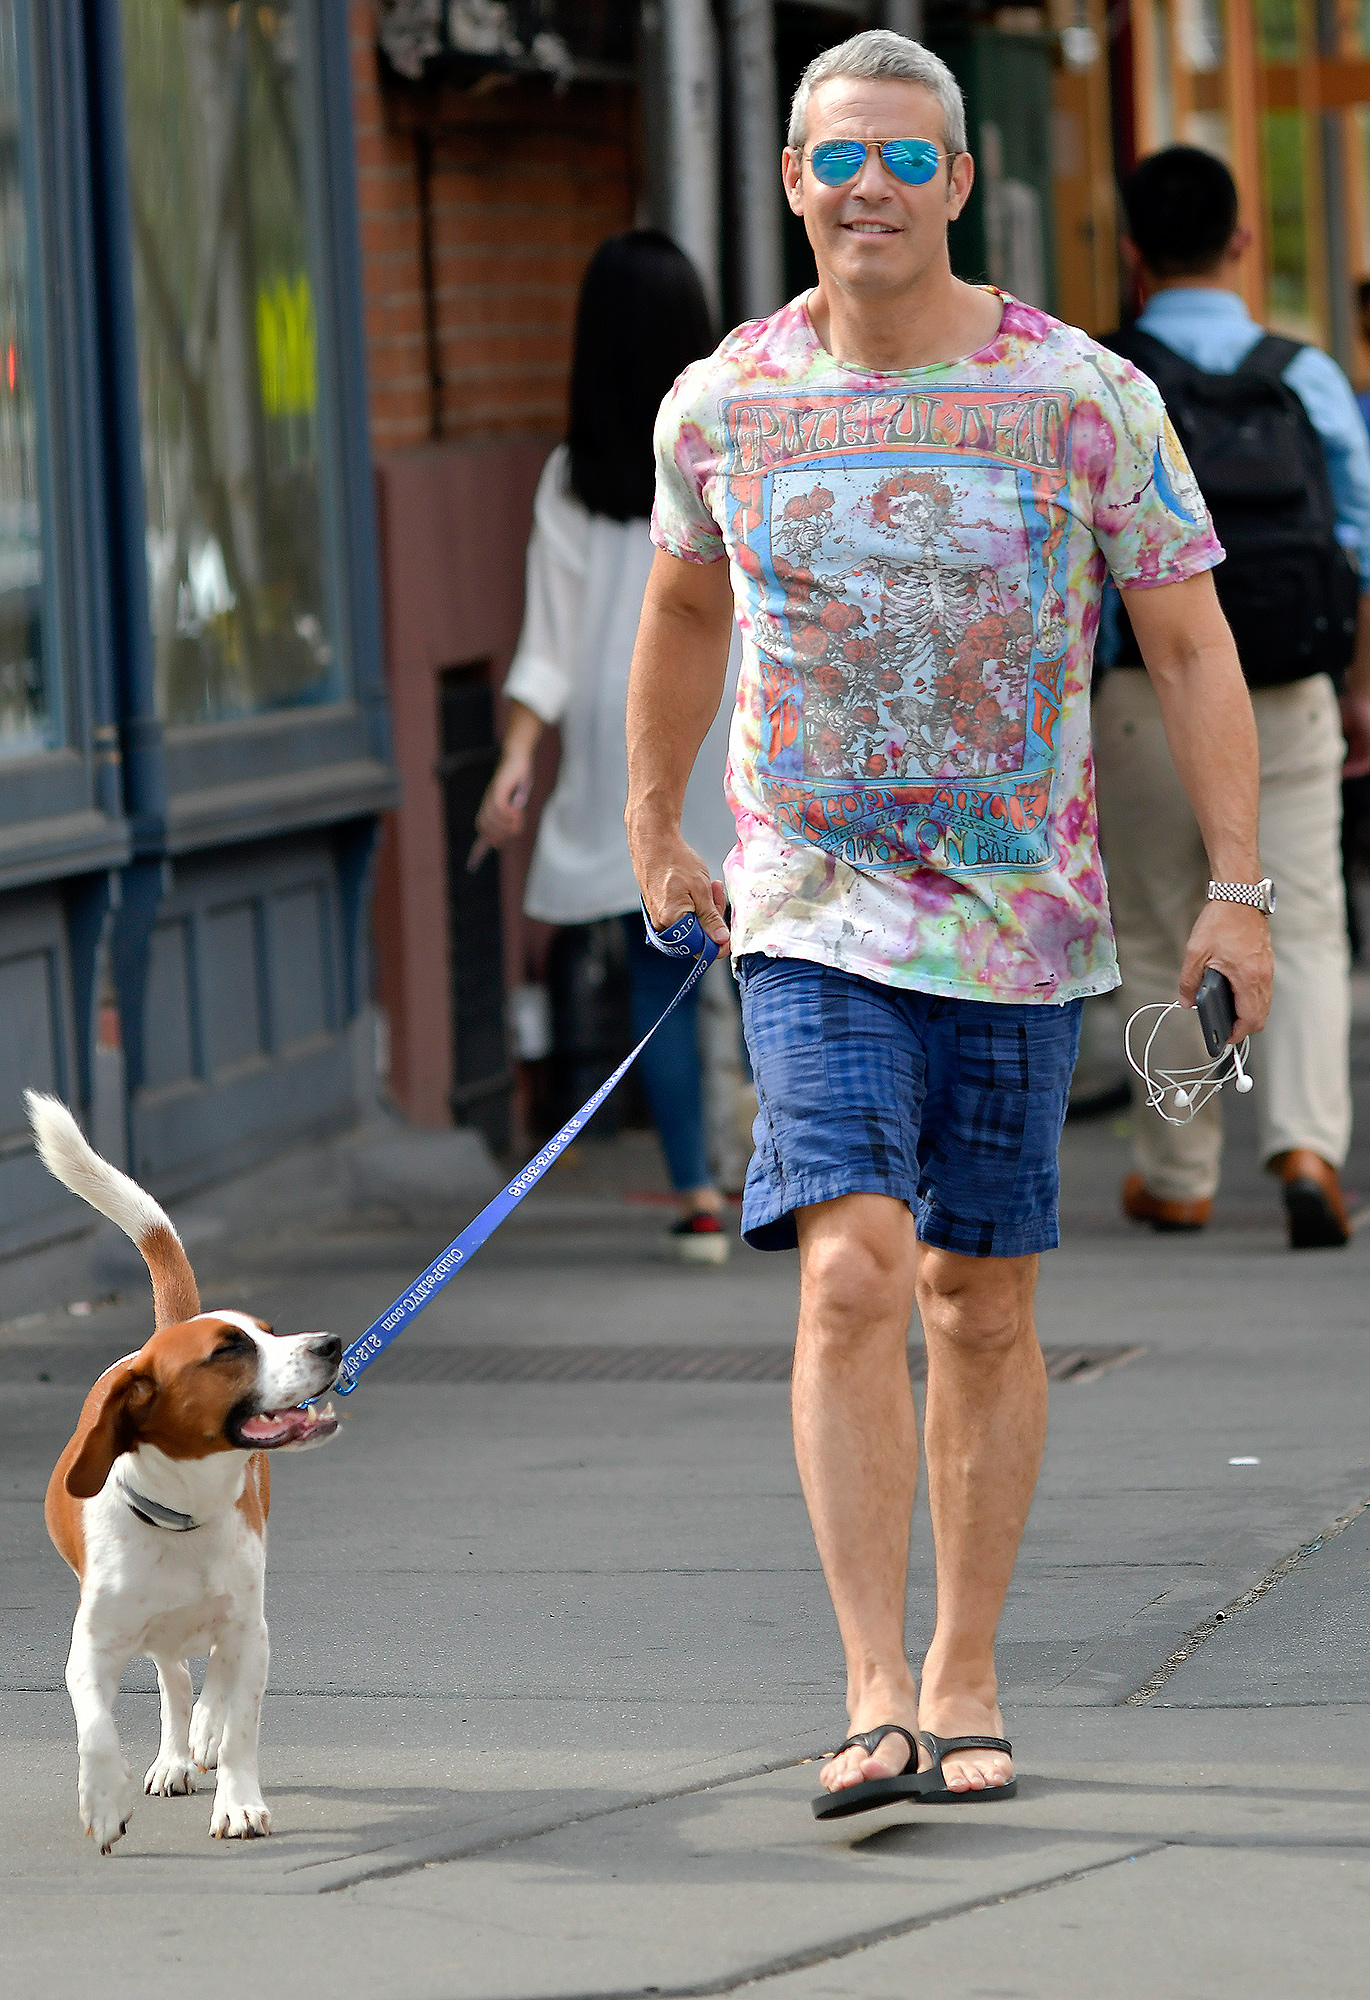 EXCLUSIVE: Andy Cohen wears a Grateful Dead shirt while walking his dog in the West Village in New York City